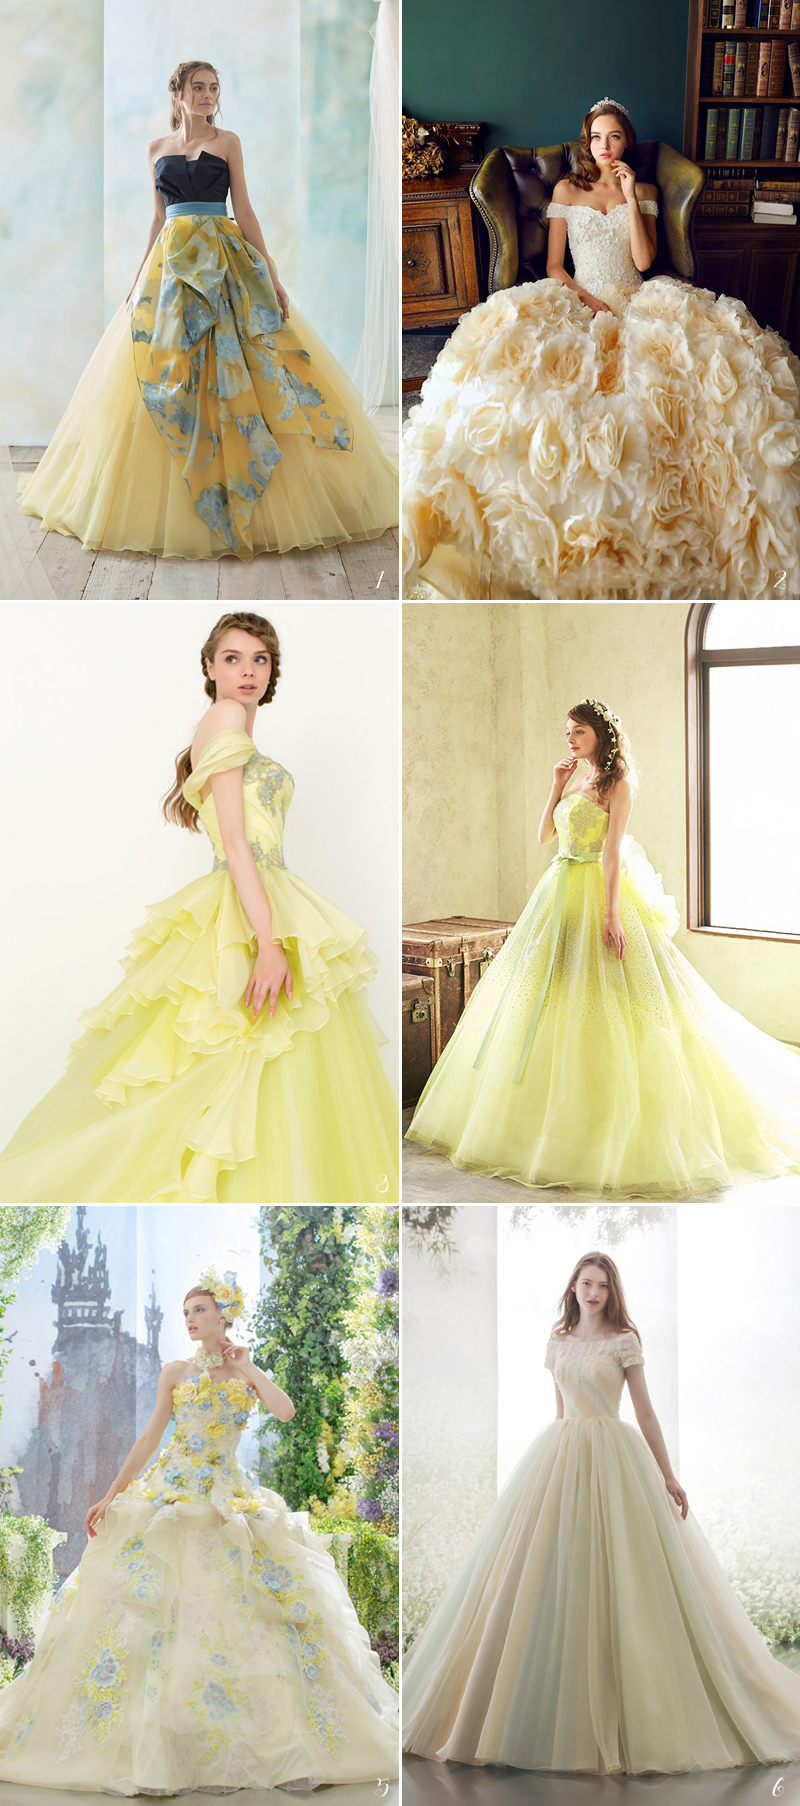 Best 25+ Disney wedding gowns ideas on Pinterest | Princess ...